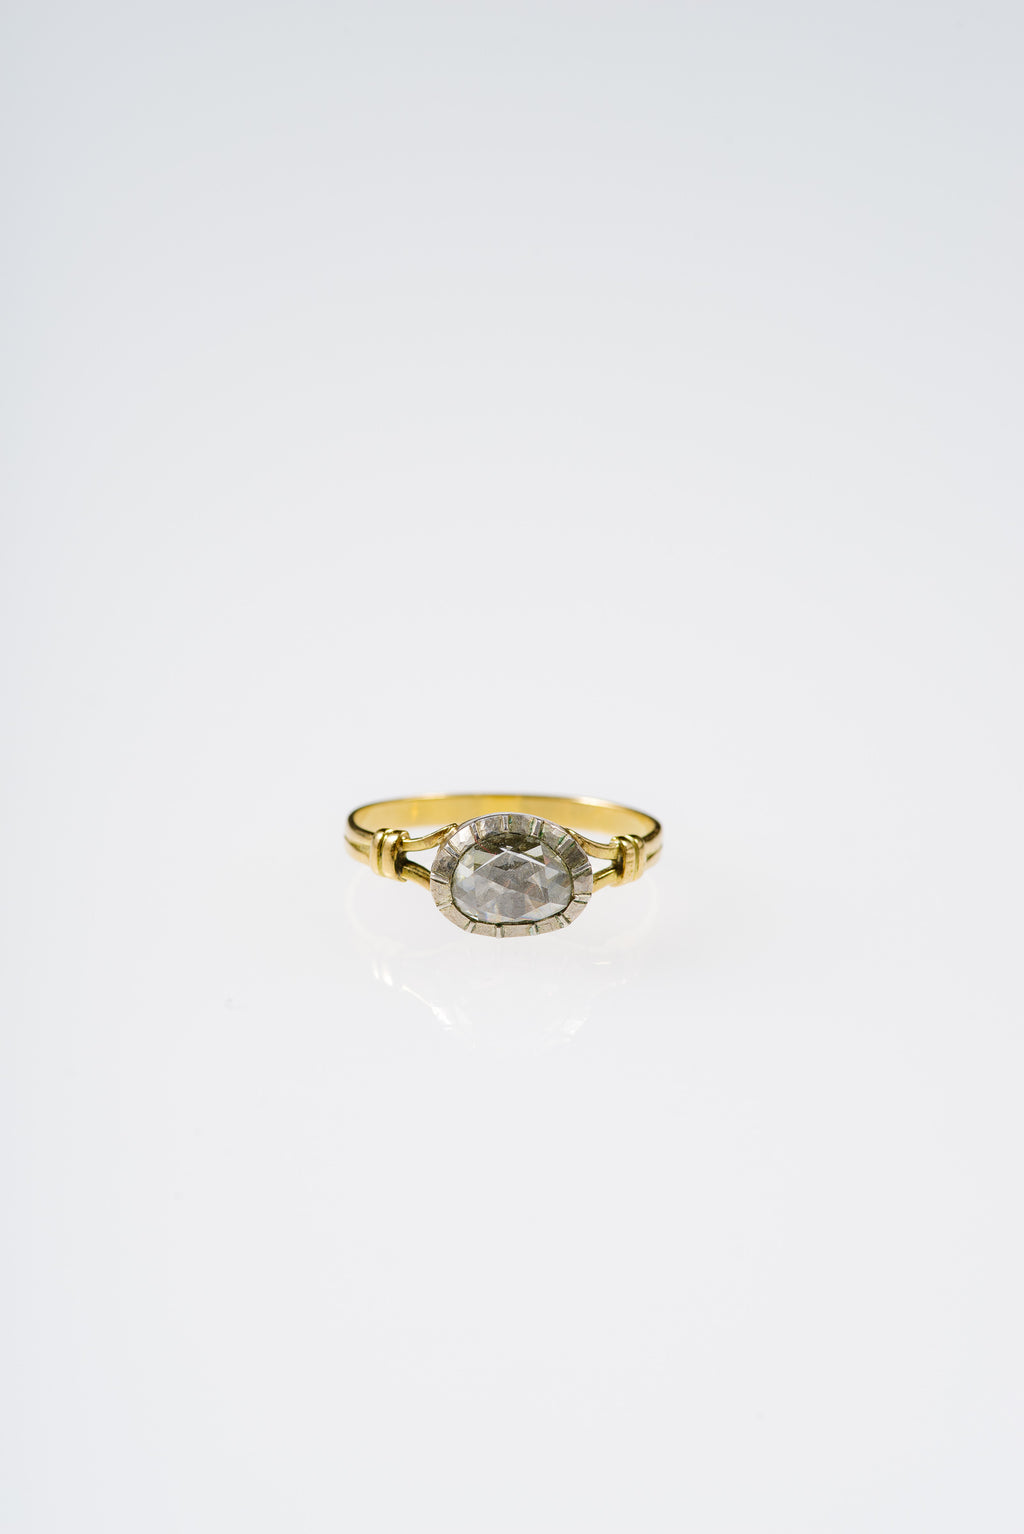 GEORGIAN ERA OVAL DIAMOND RING